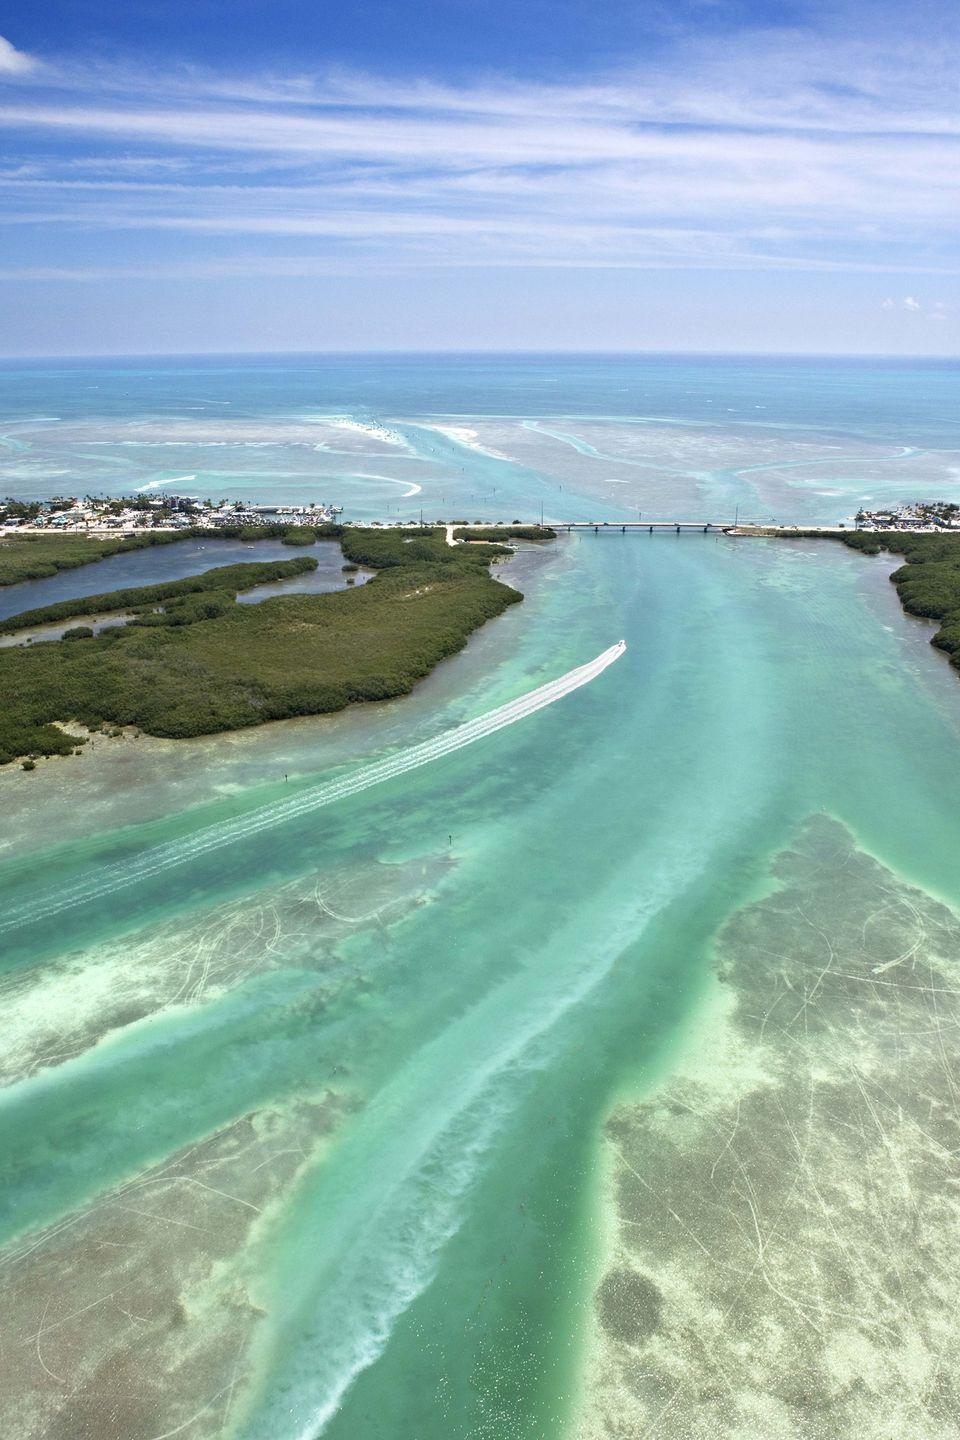 <p><strong>Where: </strong>Florida Keys, Florida</p><p><strong>Why We Love It: </strong>Florida is home to over a thousand miles of America's coastline, including the string of tropical islands that make up the state's southern tip.</p>